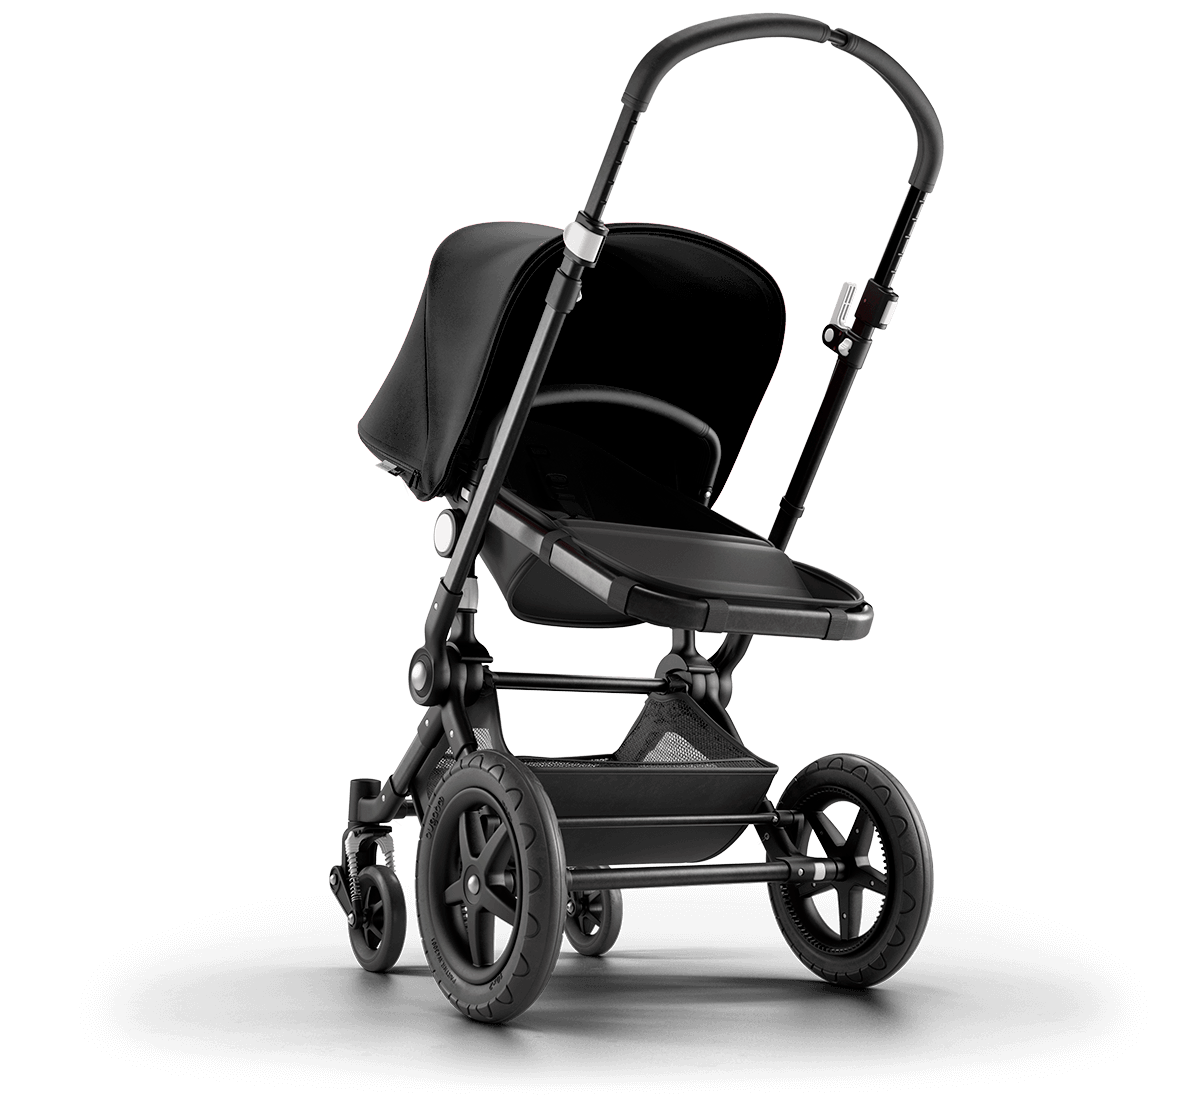 Bugaboo Cameleon 3 Plus complete stroller with black fabrics and black frame